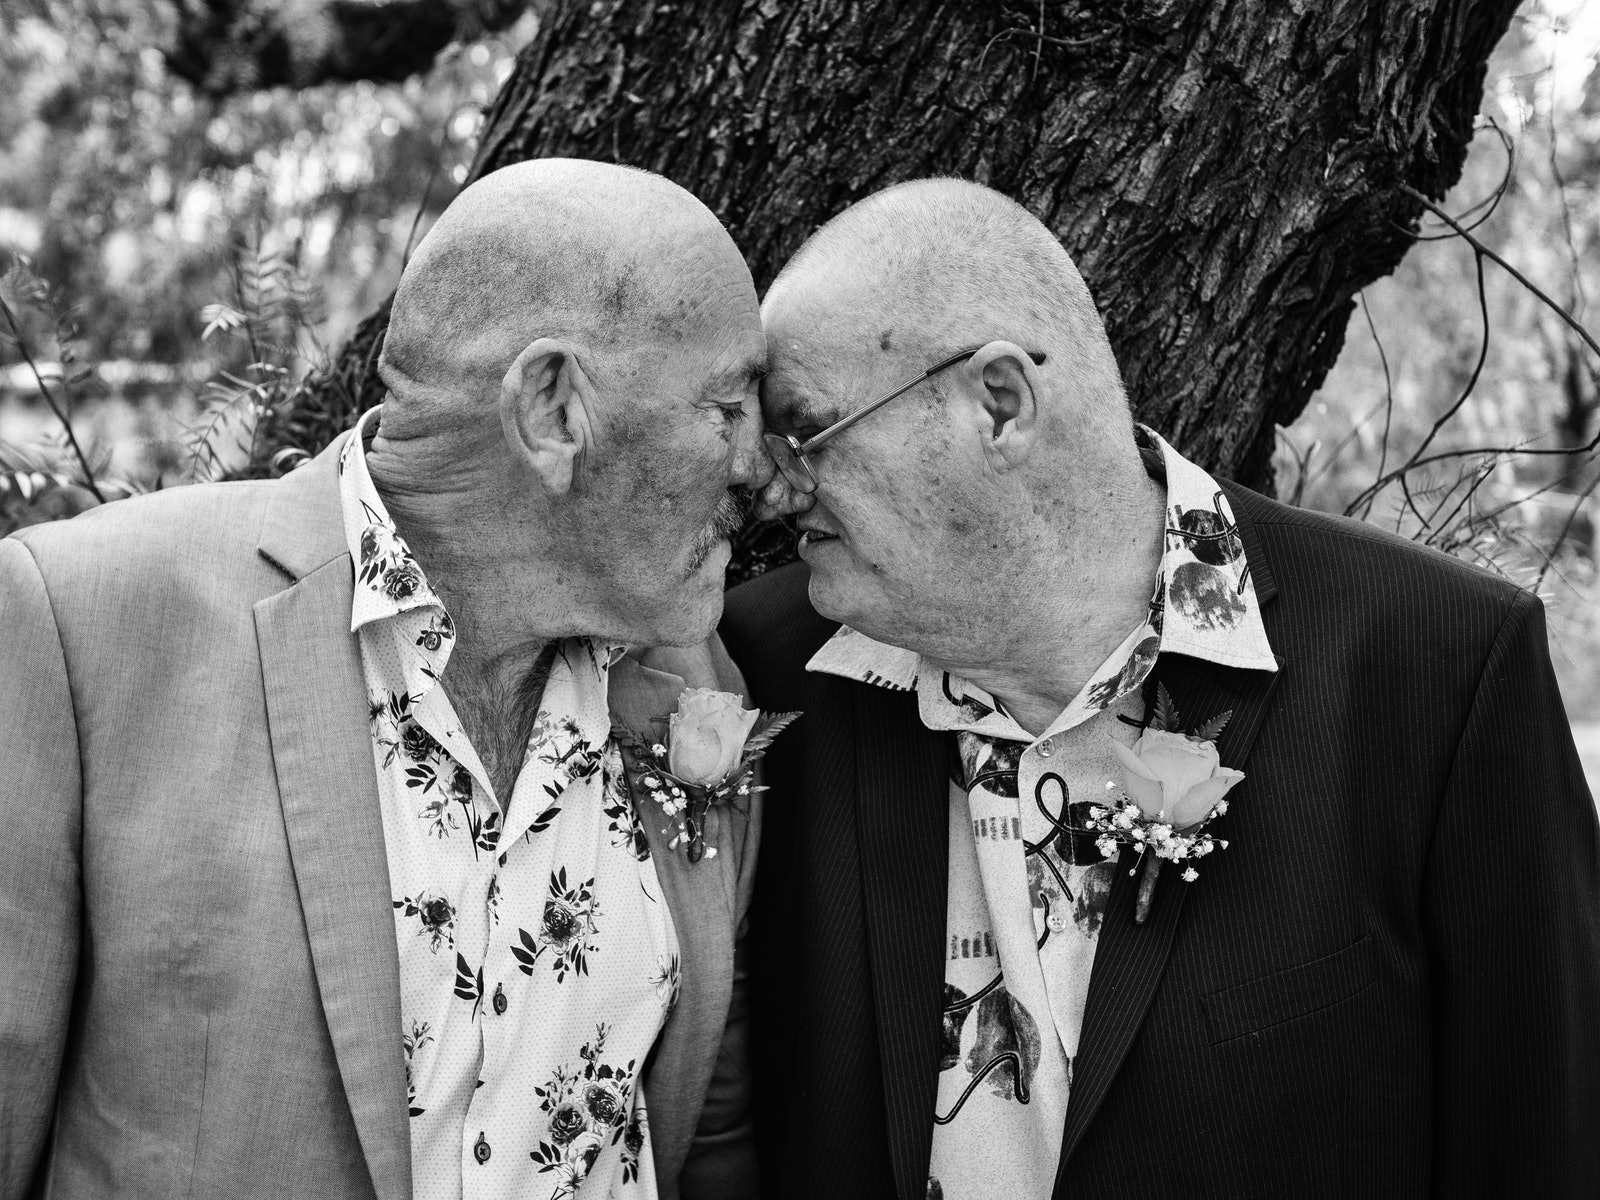 Garry&Peter-71 - Garry & Peter's Wedding 9th February 2019